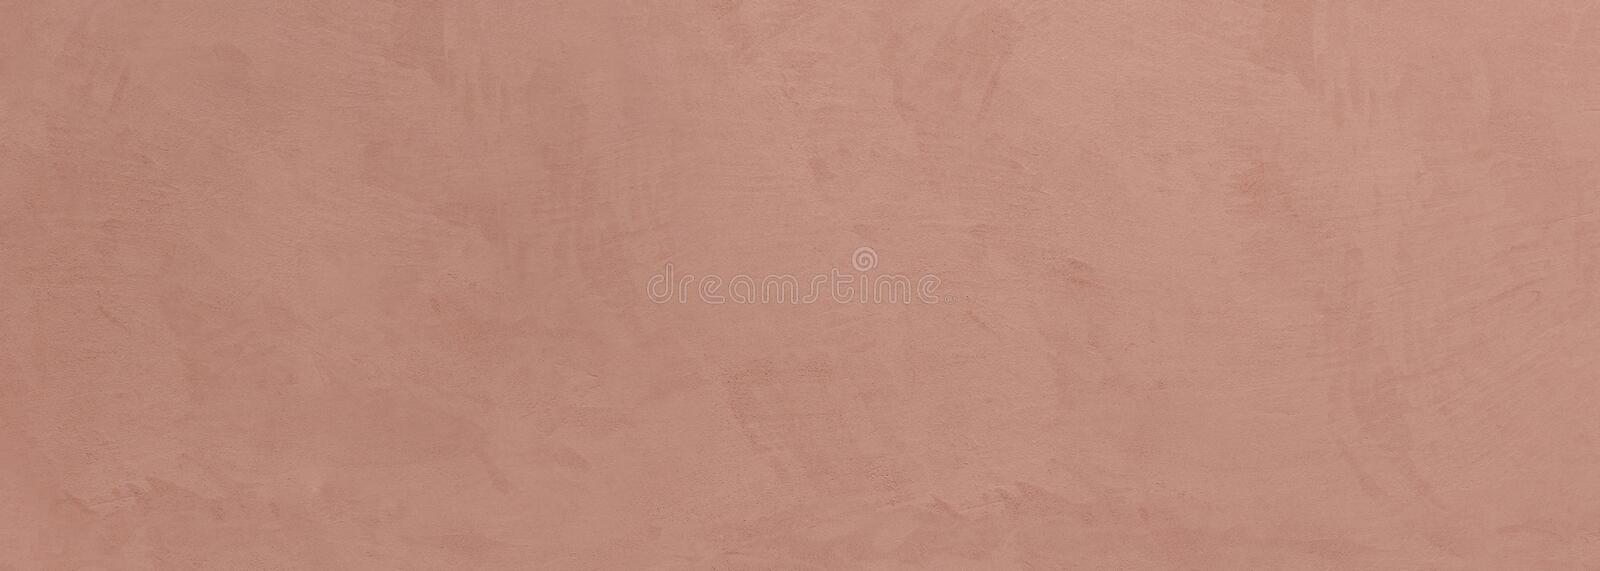 Stucco painted wall texture background, beige brown color, banner royalty free stock photography